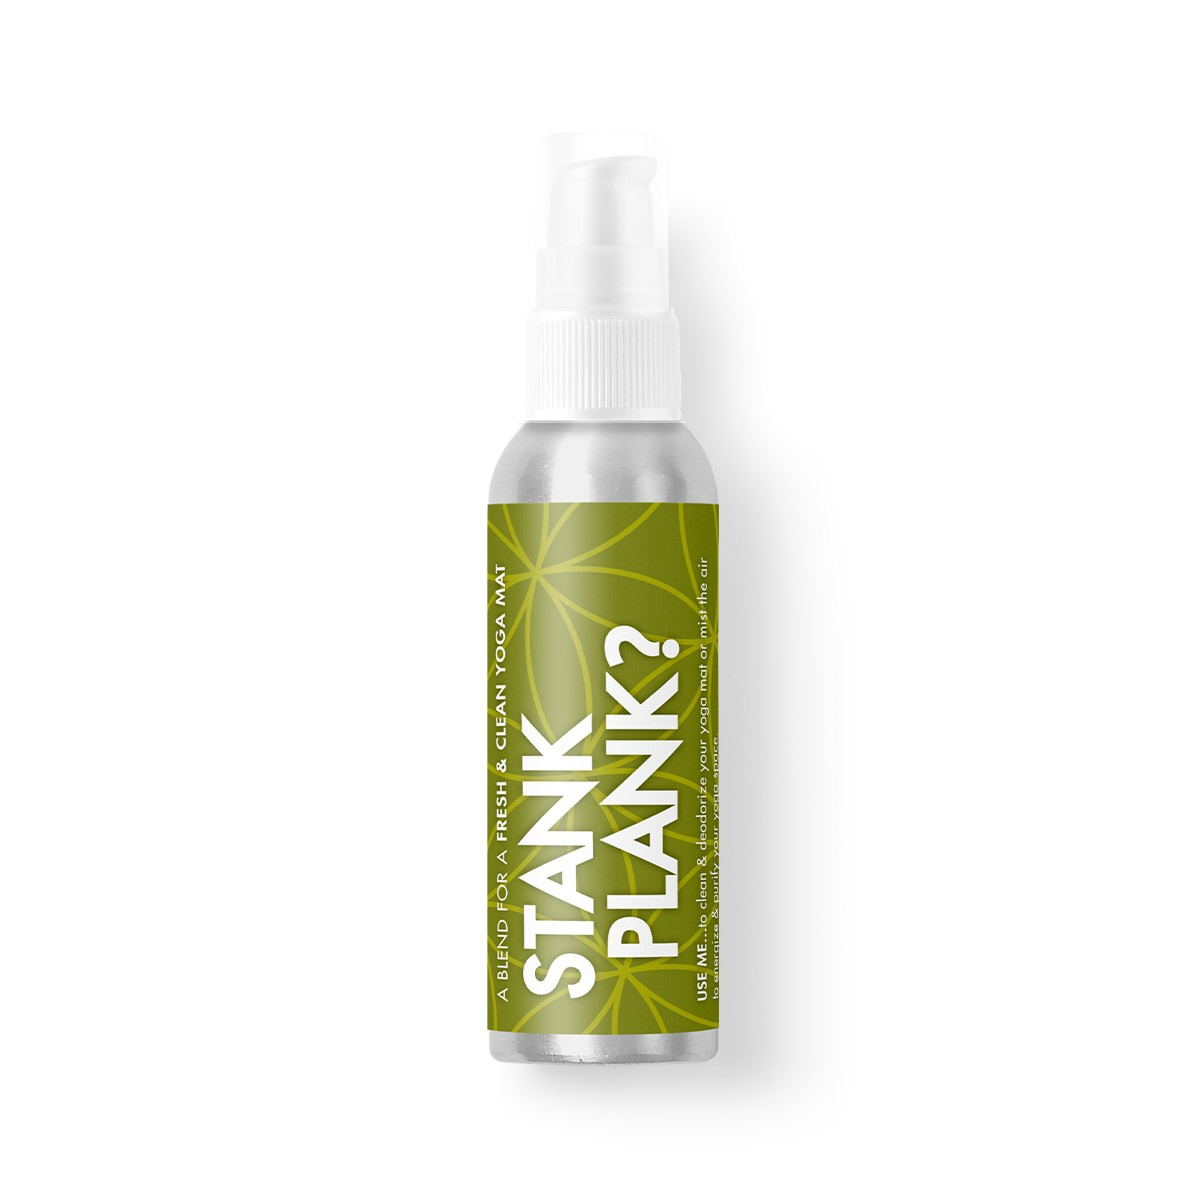 Stankplank Yoga Mat Essential Oil Spray Whiffcraft